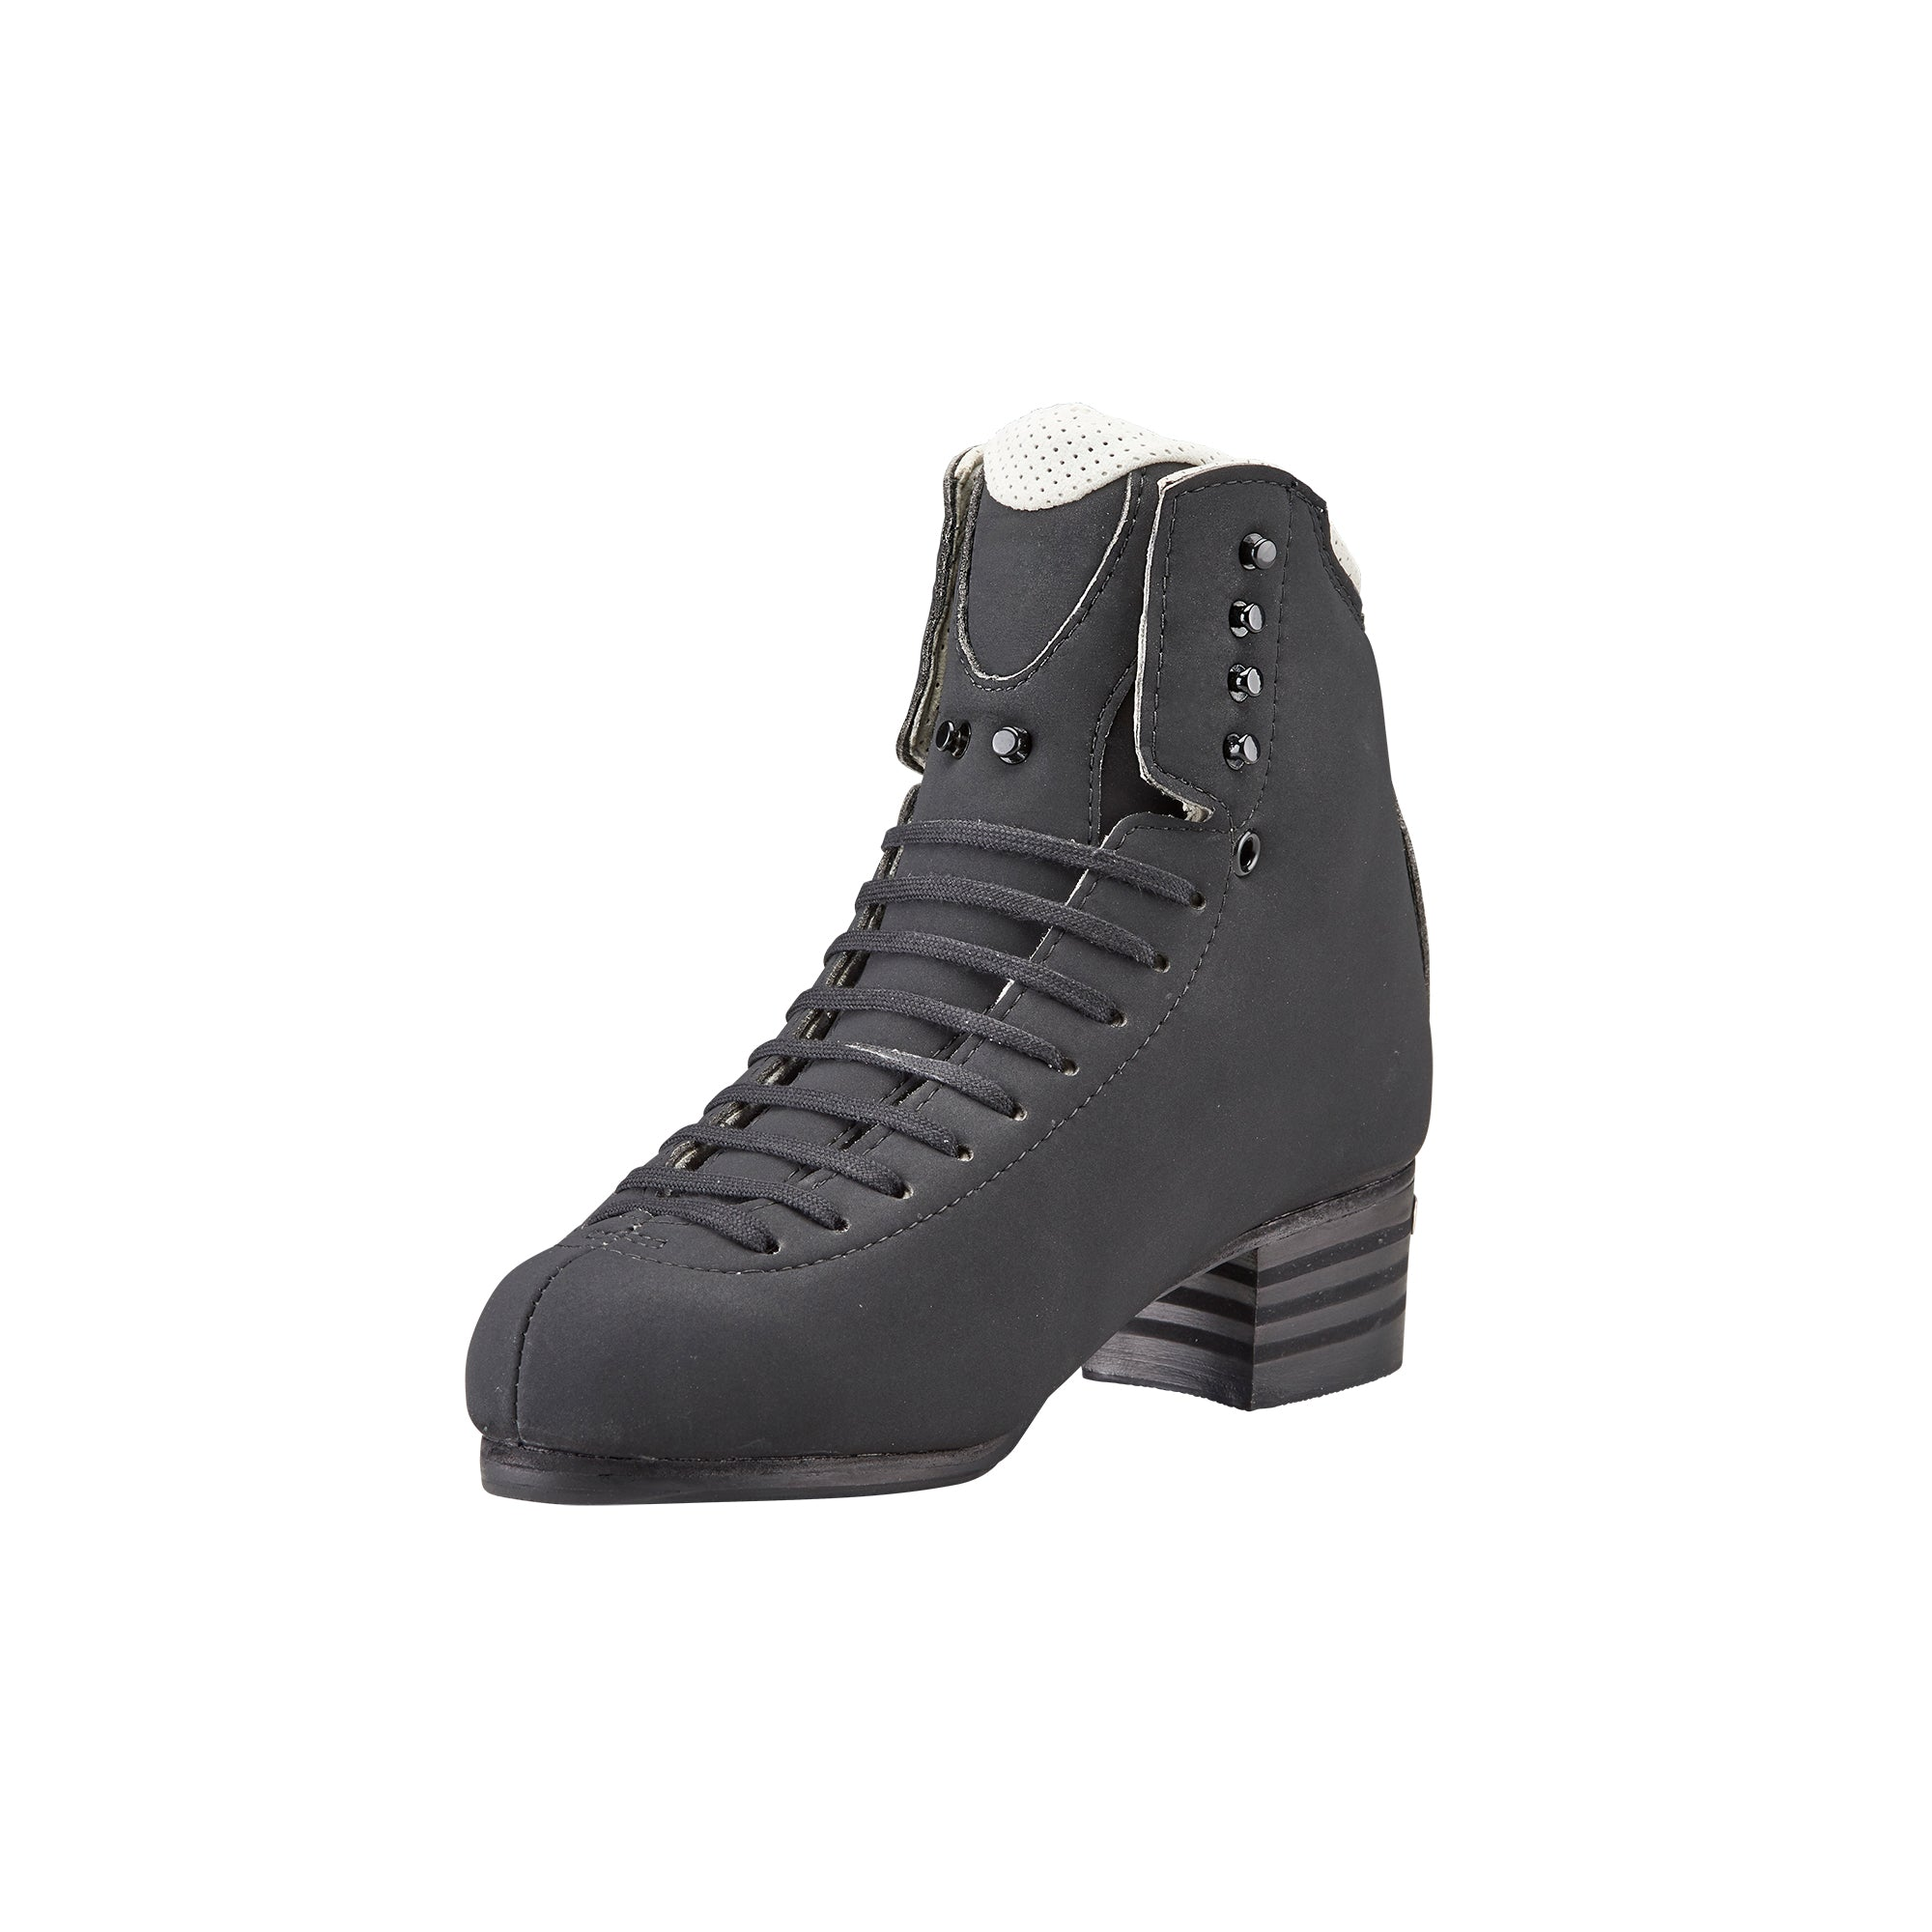 Jackson Elite 5252 Black Figure Skate Boot